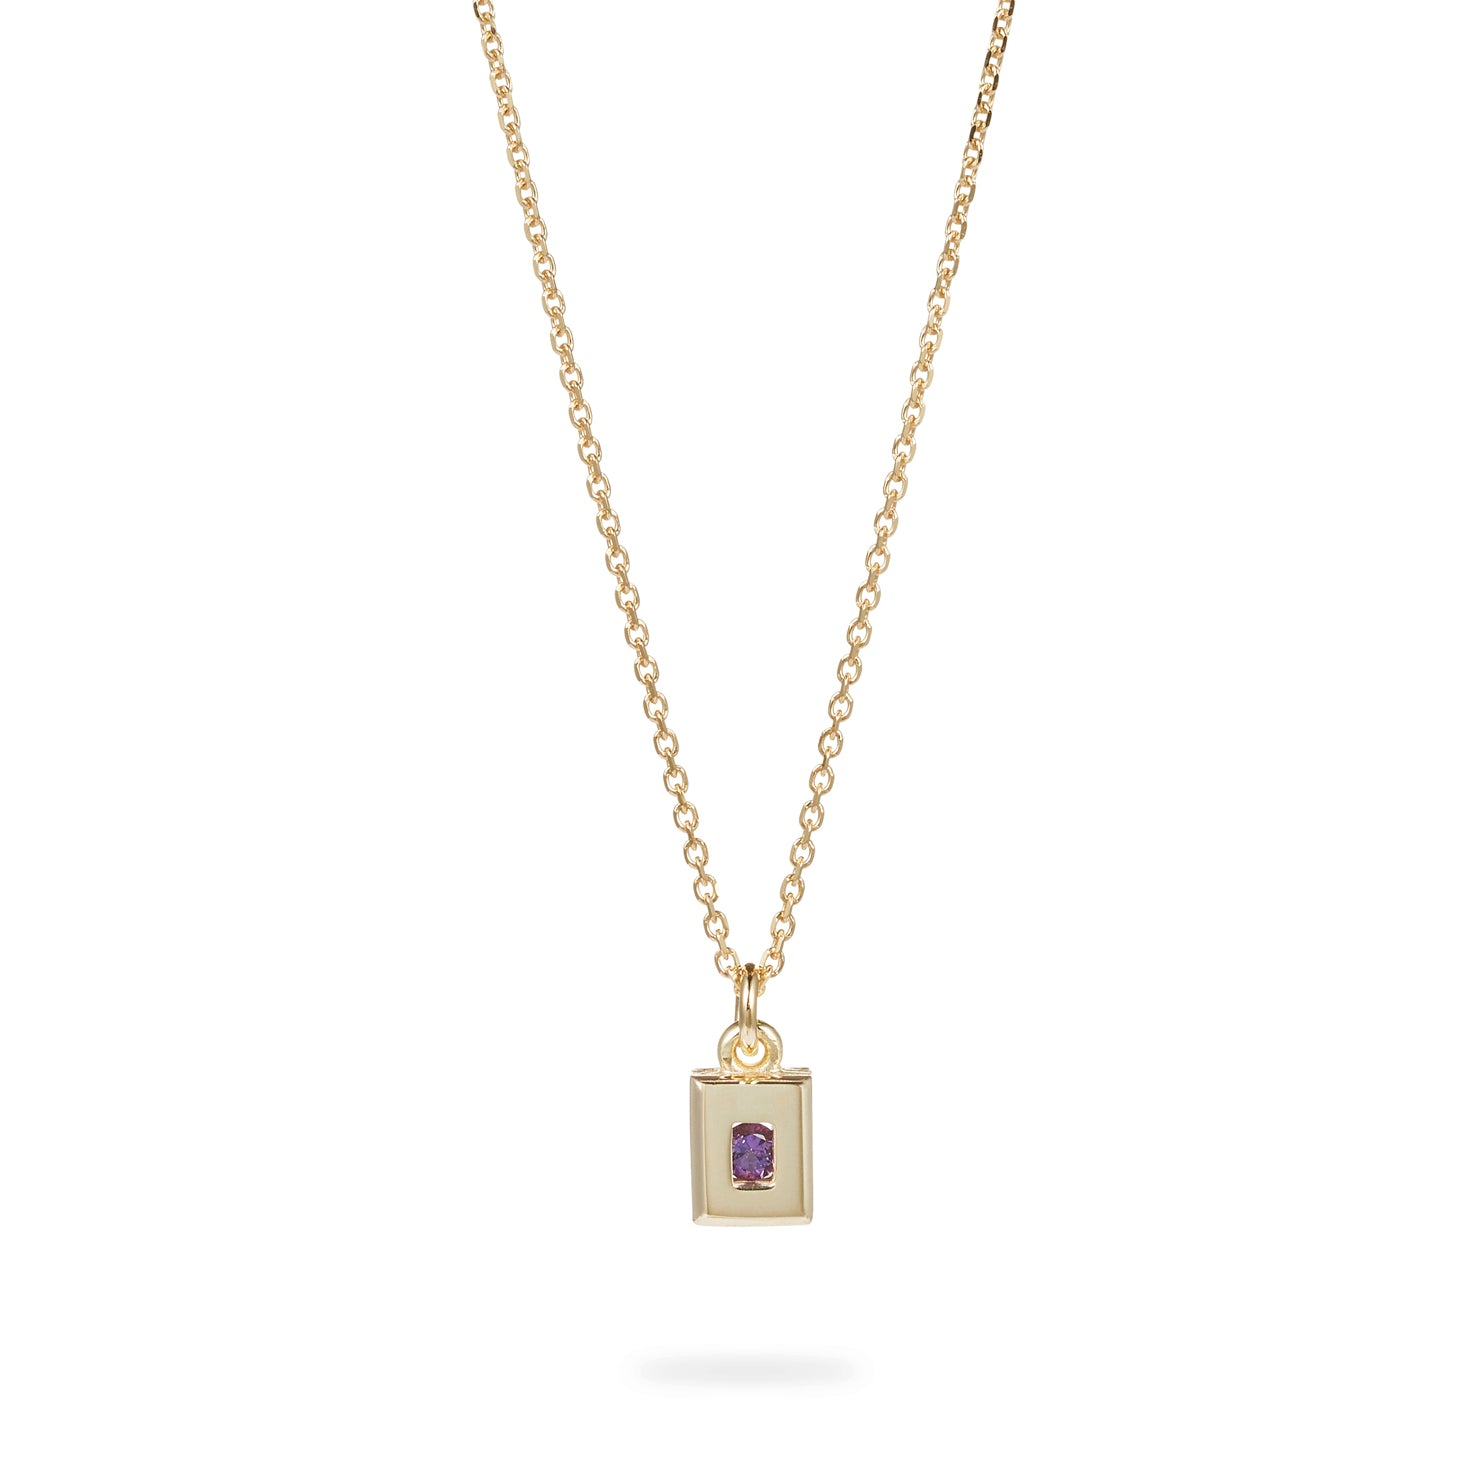 Luke Rose Jewellery gold amethyst necklace